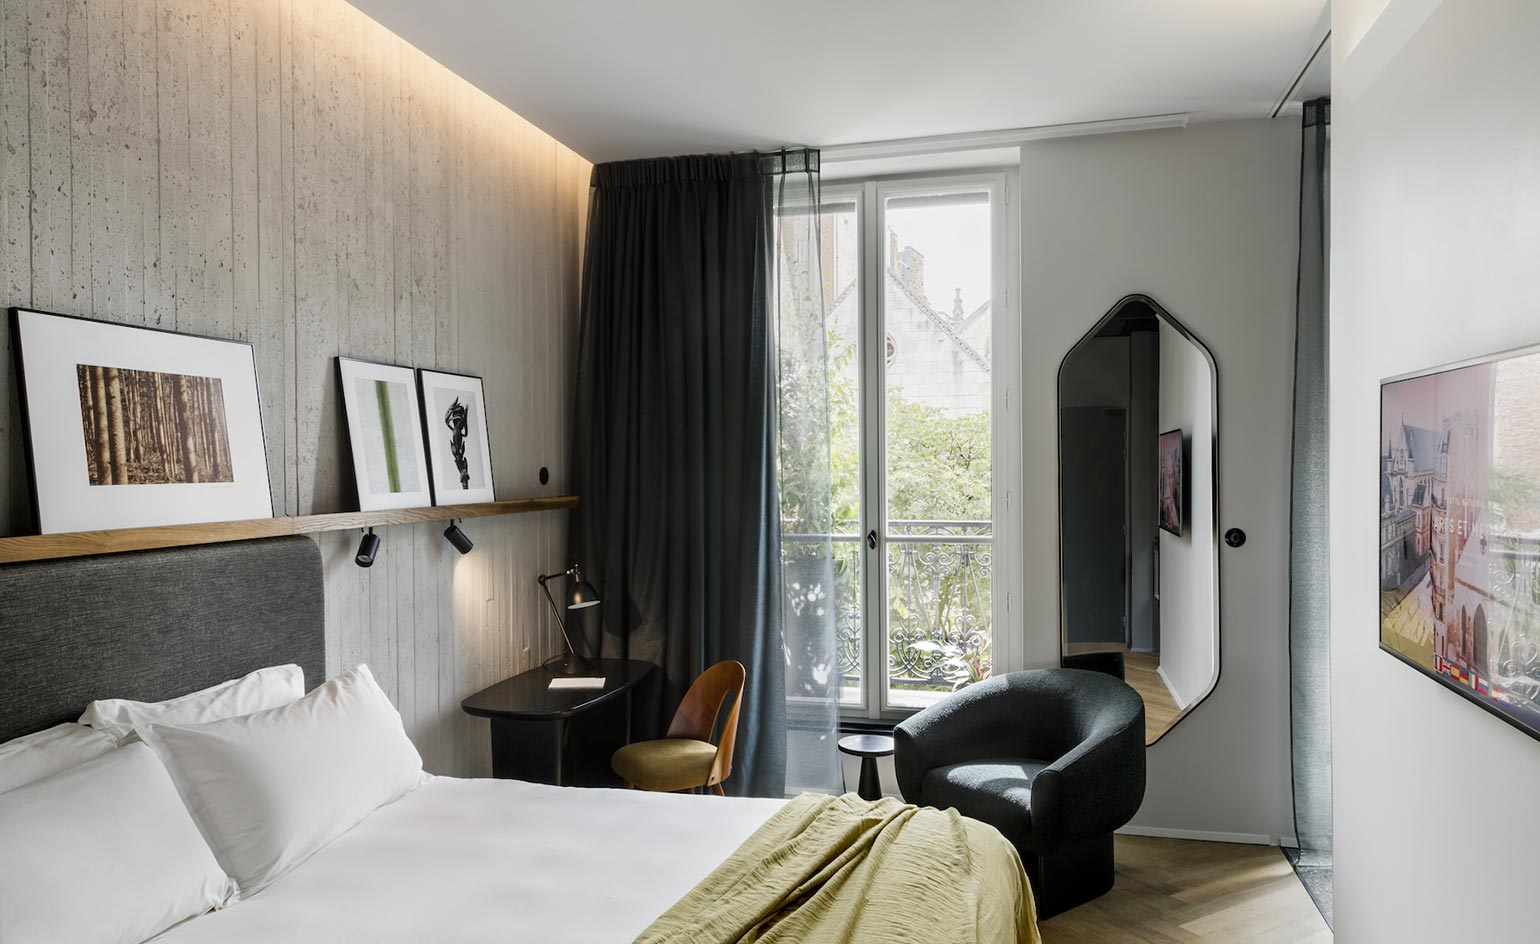 Hotel national des arts et m tiers hotel review paris for Chambre de hotel france